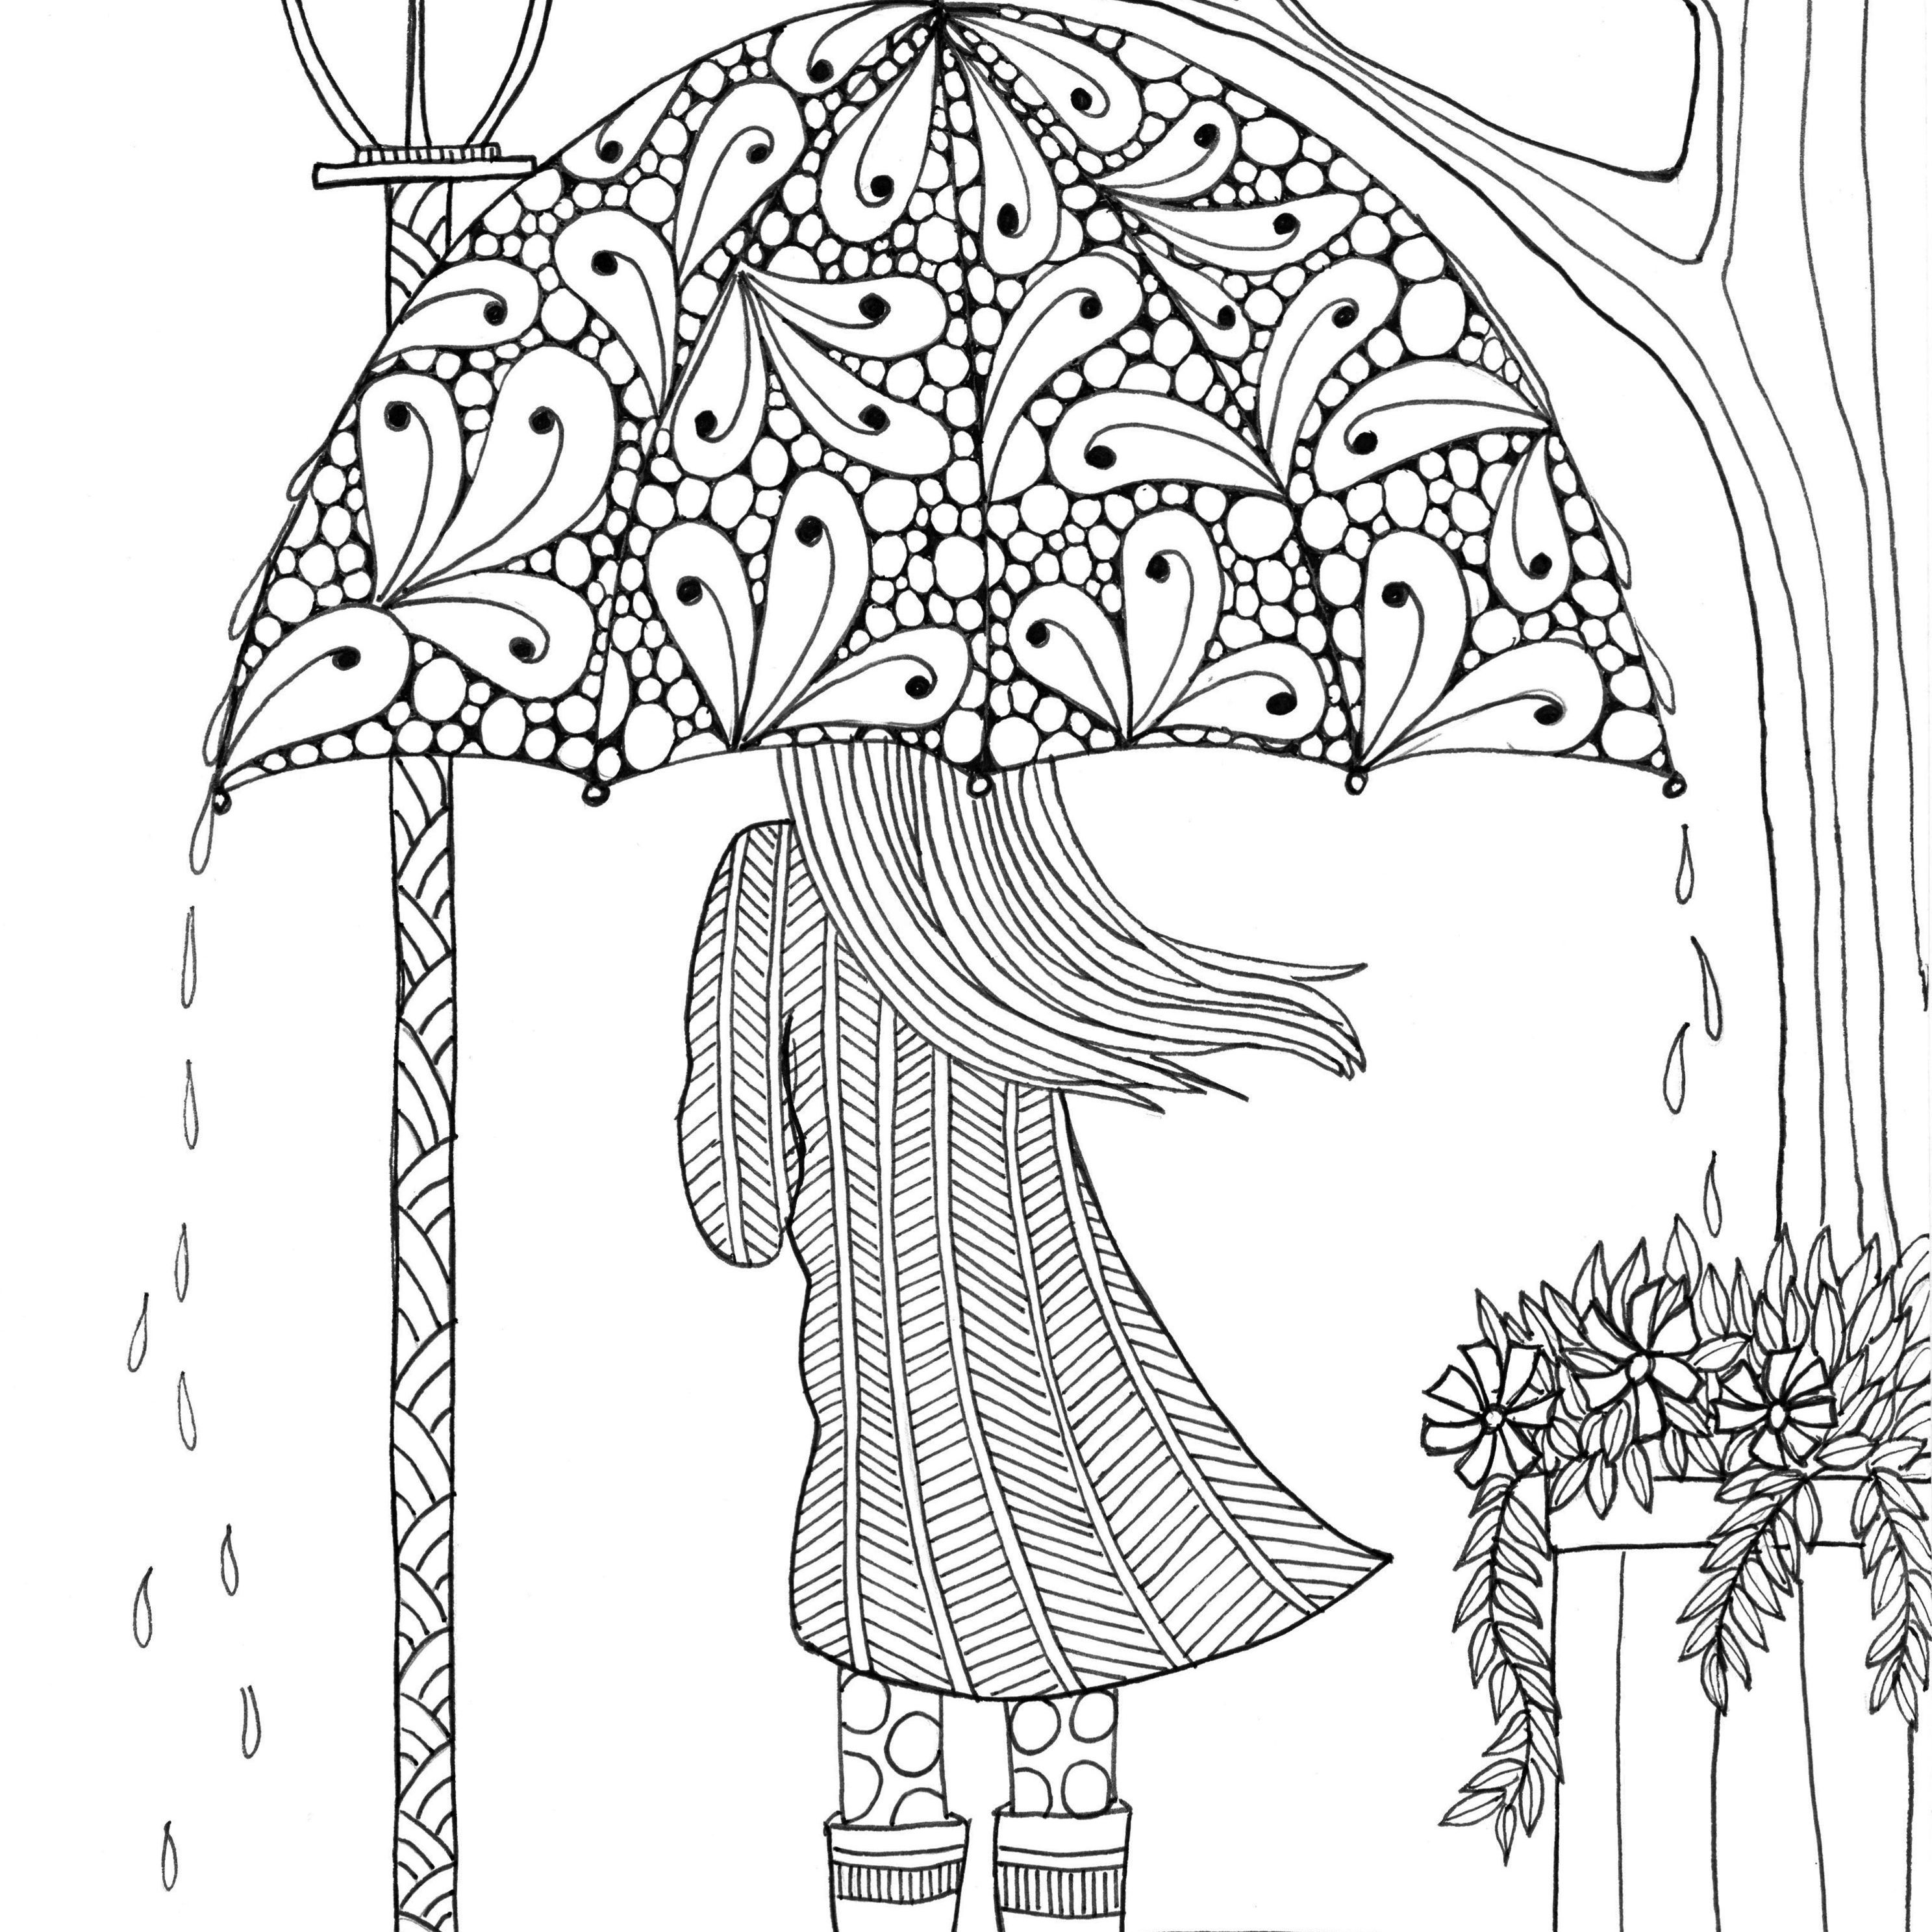 Adult coloring pages from judy clement wall